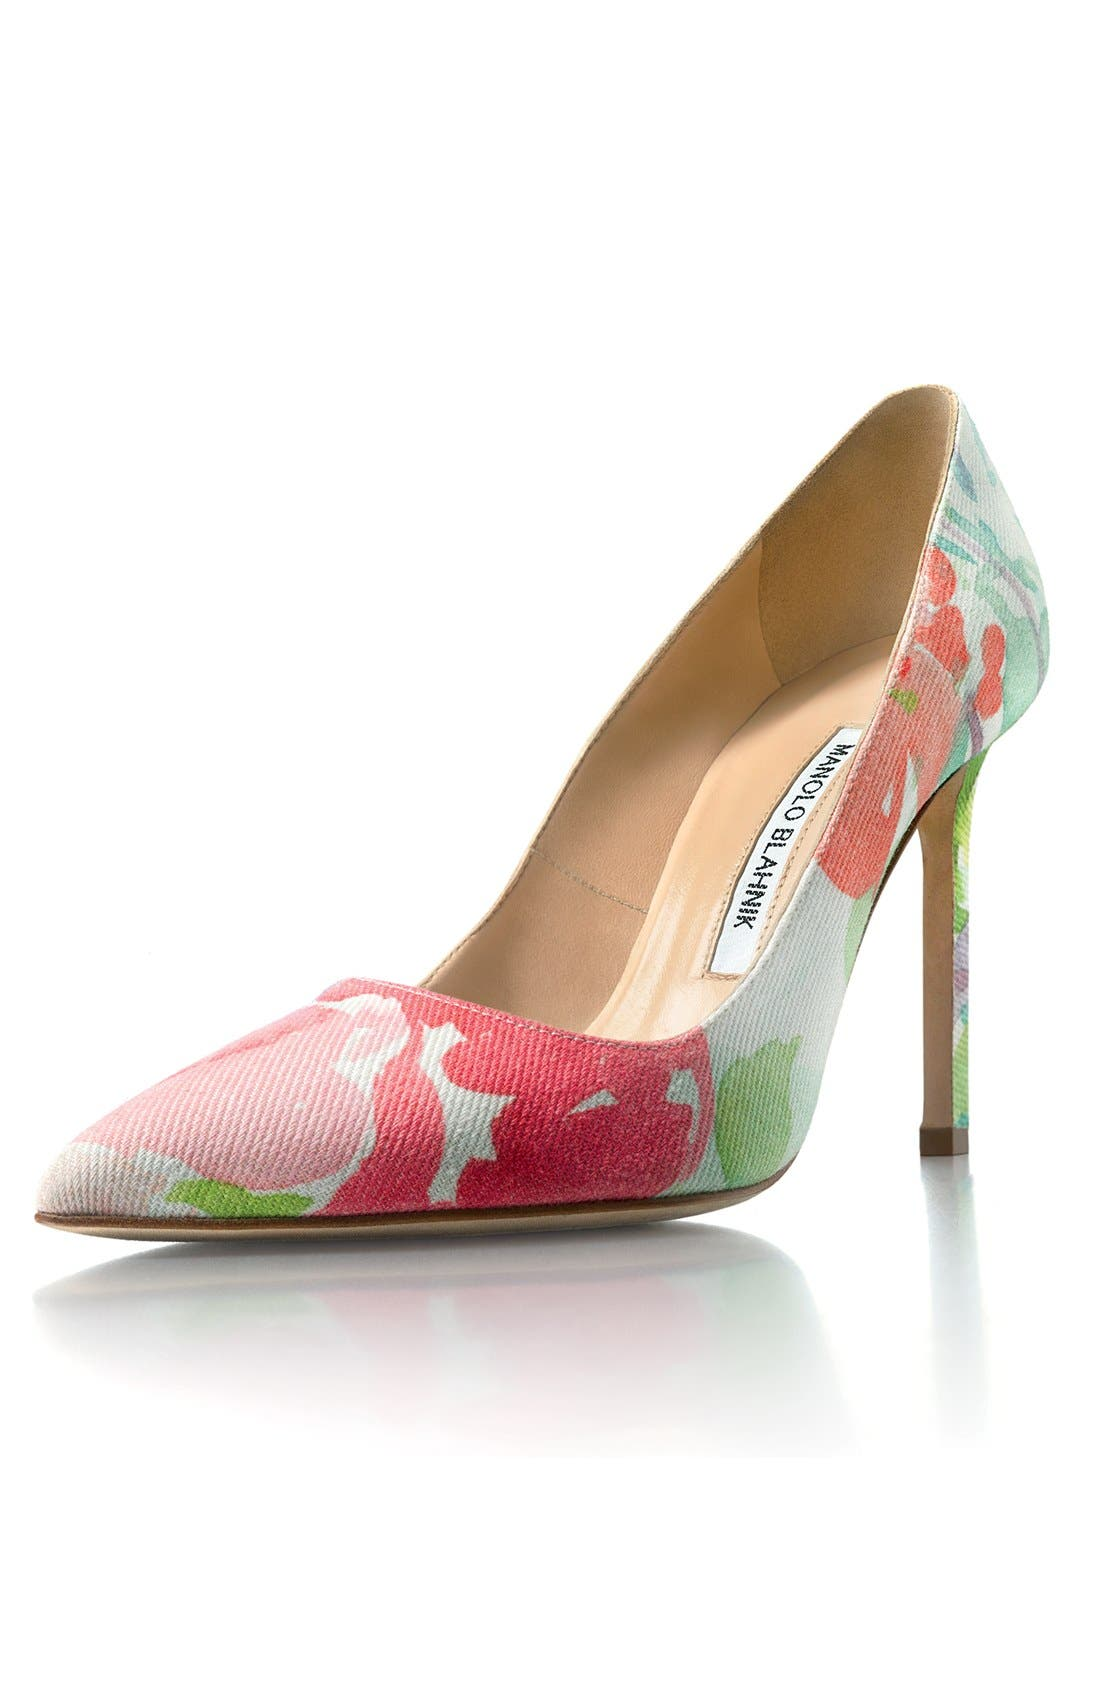 Pointy Toe Pump,                             Alternate thumbnail 7, color,                             650